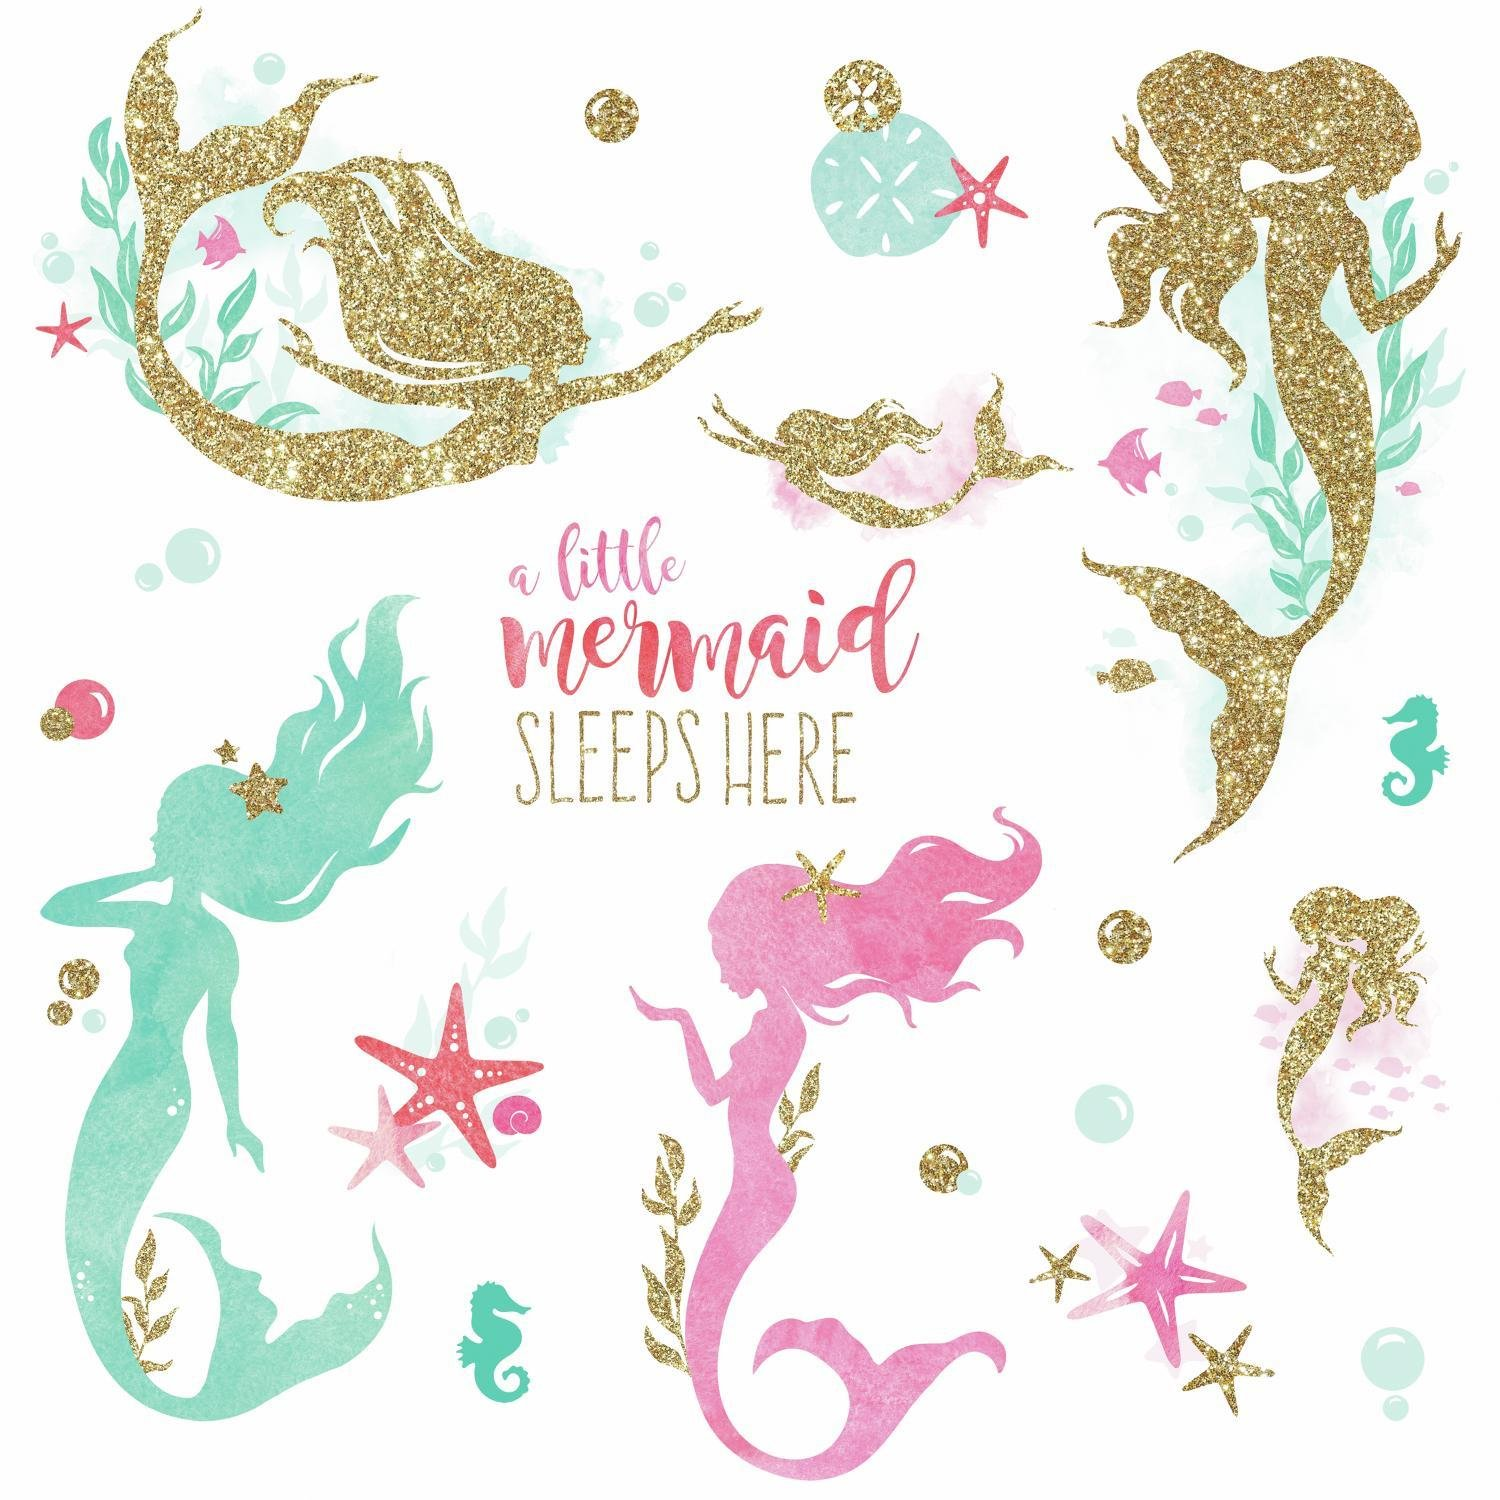 RoomMates Mermaid Peel And Stick Wall Decals With Gltter by RoomMates (Image #4)